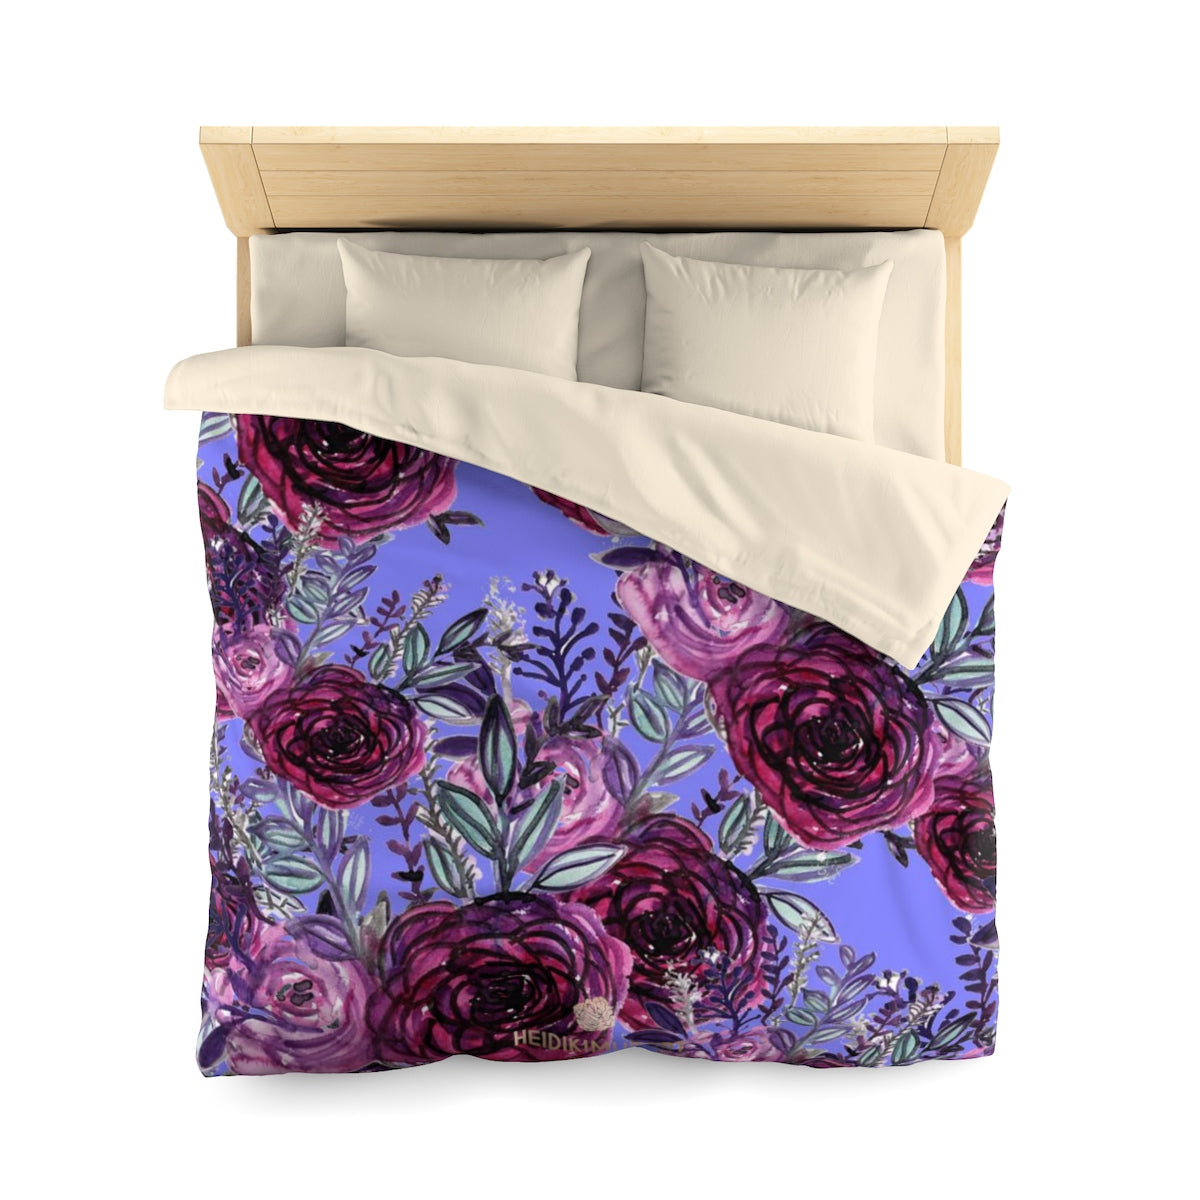 Purple Rose Floral Print Premium Microfiber Duvet Cover for Twin/Queen Bed-Duvet Cover-Queen-Cream-Heidi Kimura Art LLC